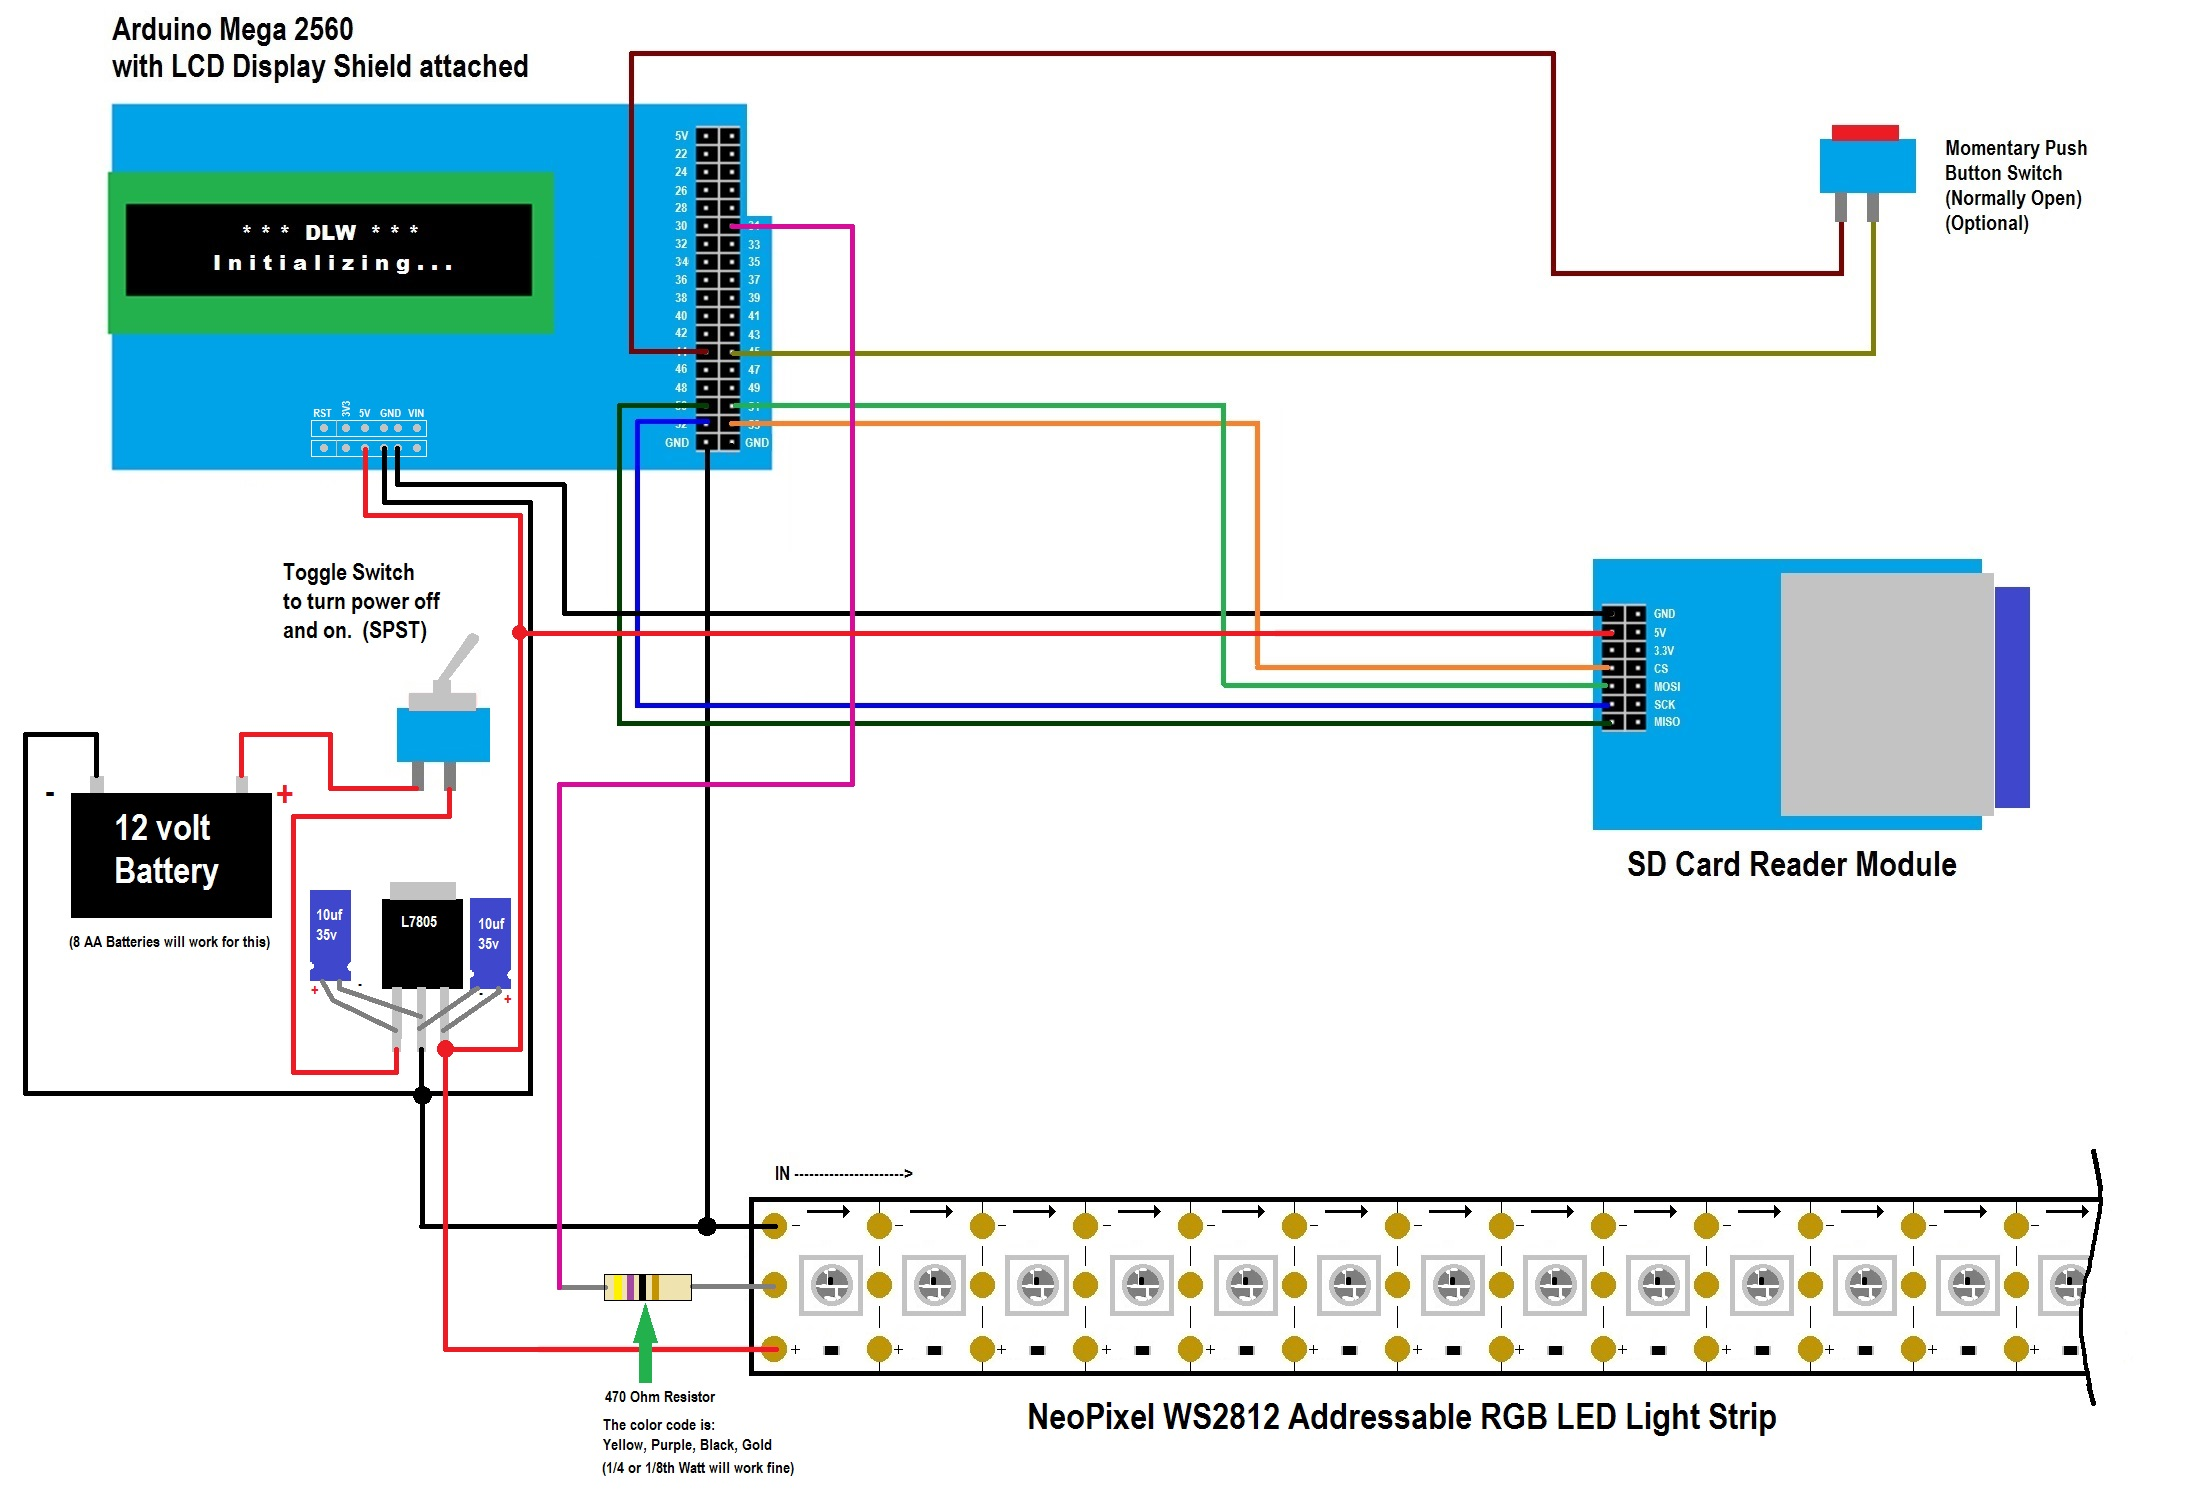 1) Click here to download the Wiring Diagram for the NeoPixel WS2812  Digital Light Wand